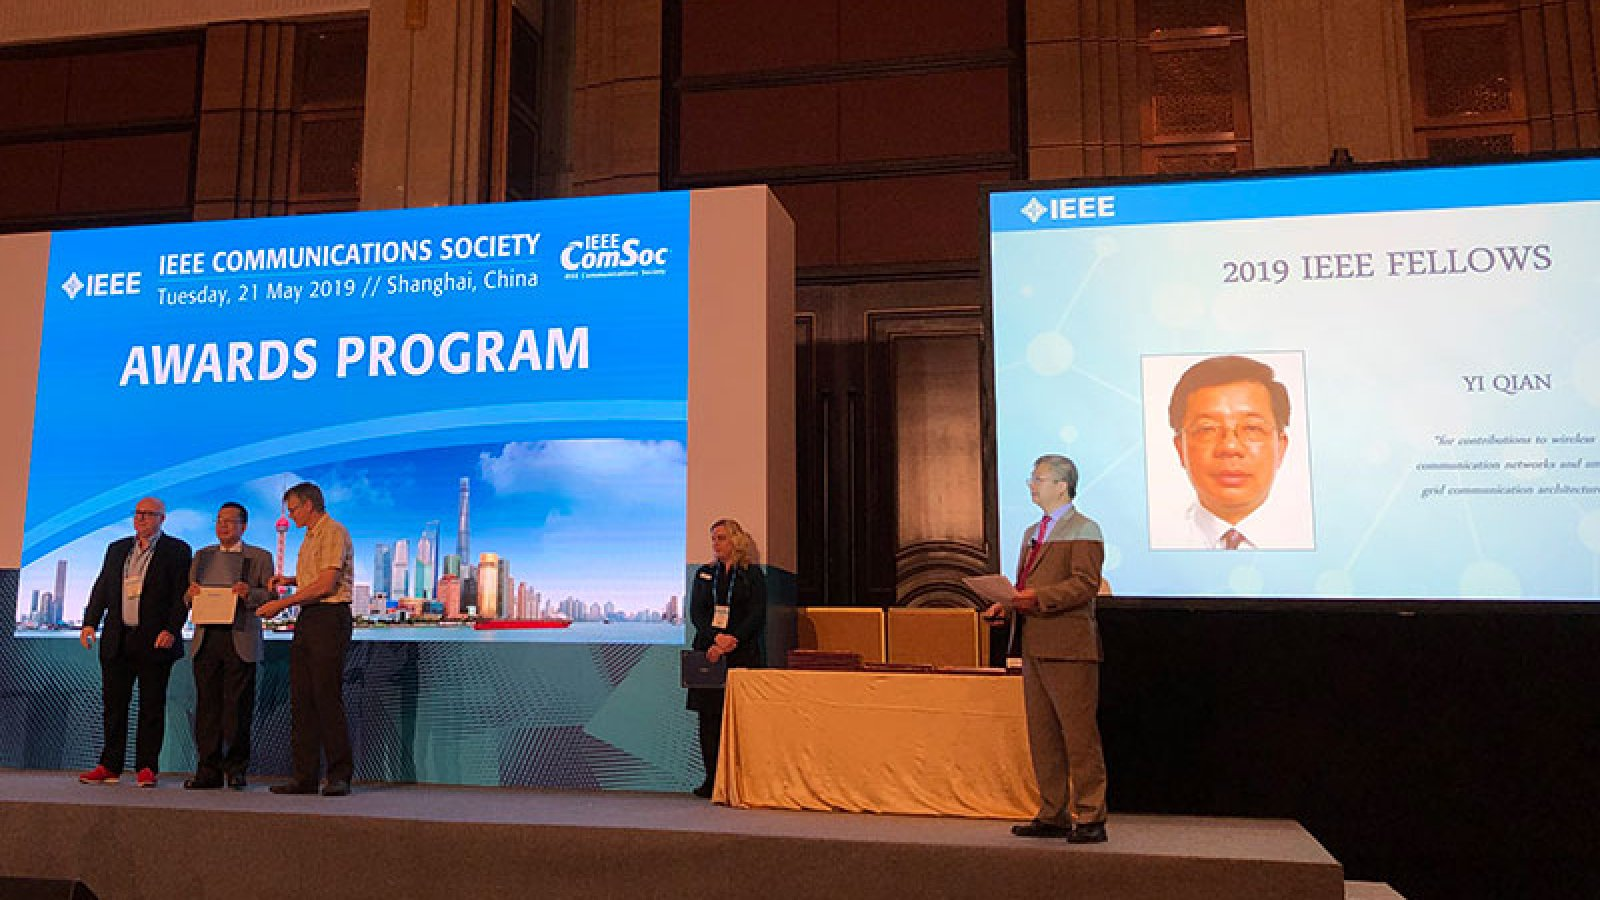 Yi Qian was honored at the 2019 IEEE International Conference on Communications in May in Shanghai, China for being named an IEEE Fellow.